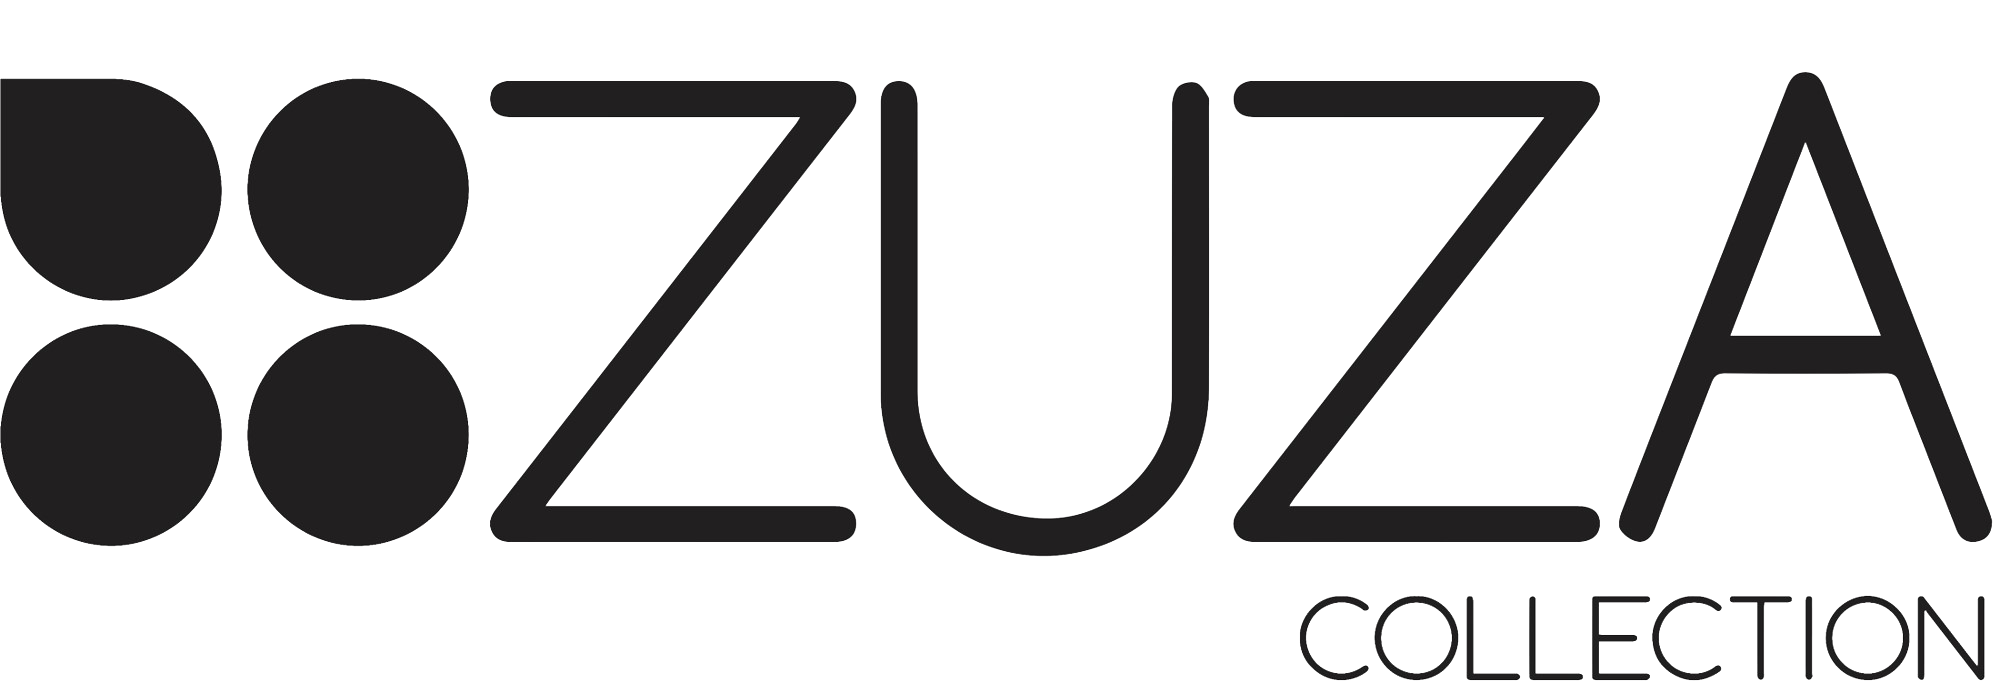 Zuza Collection